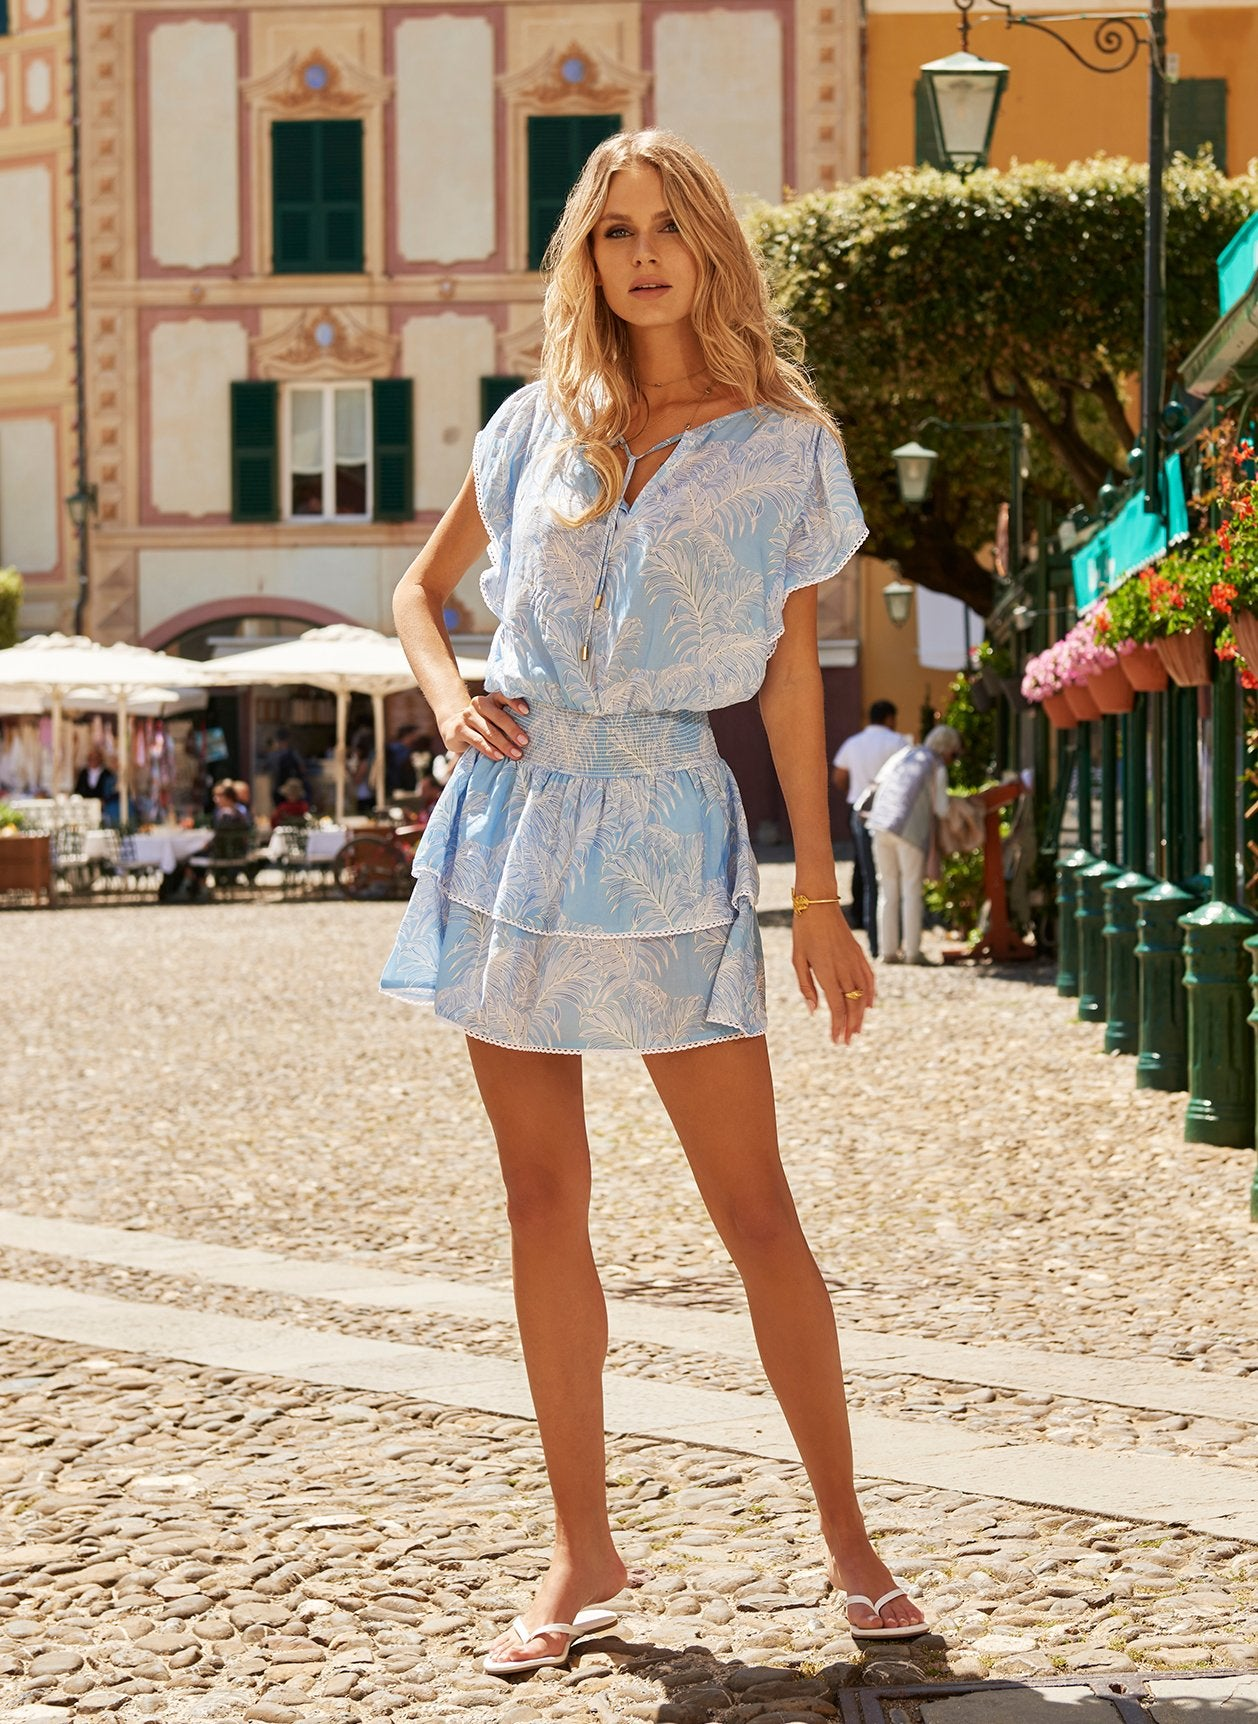 Keri Tropical Blue Frill Short Dress 2020